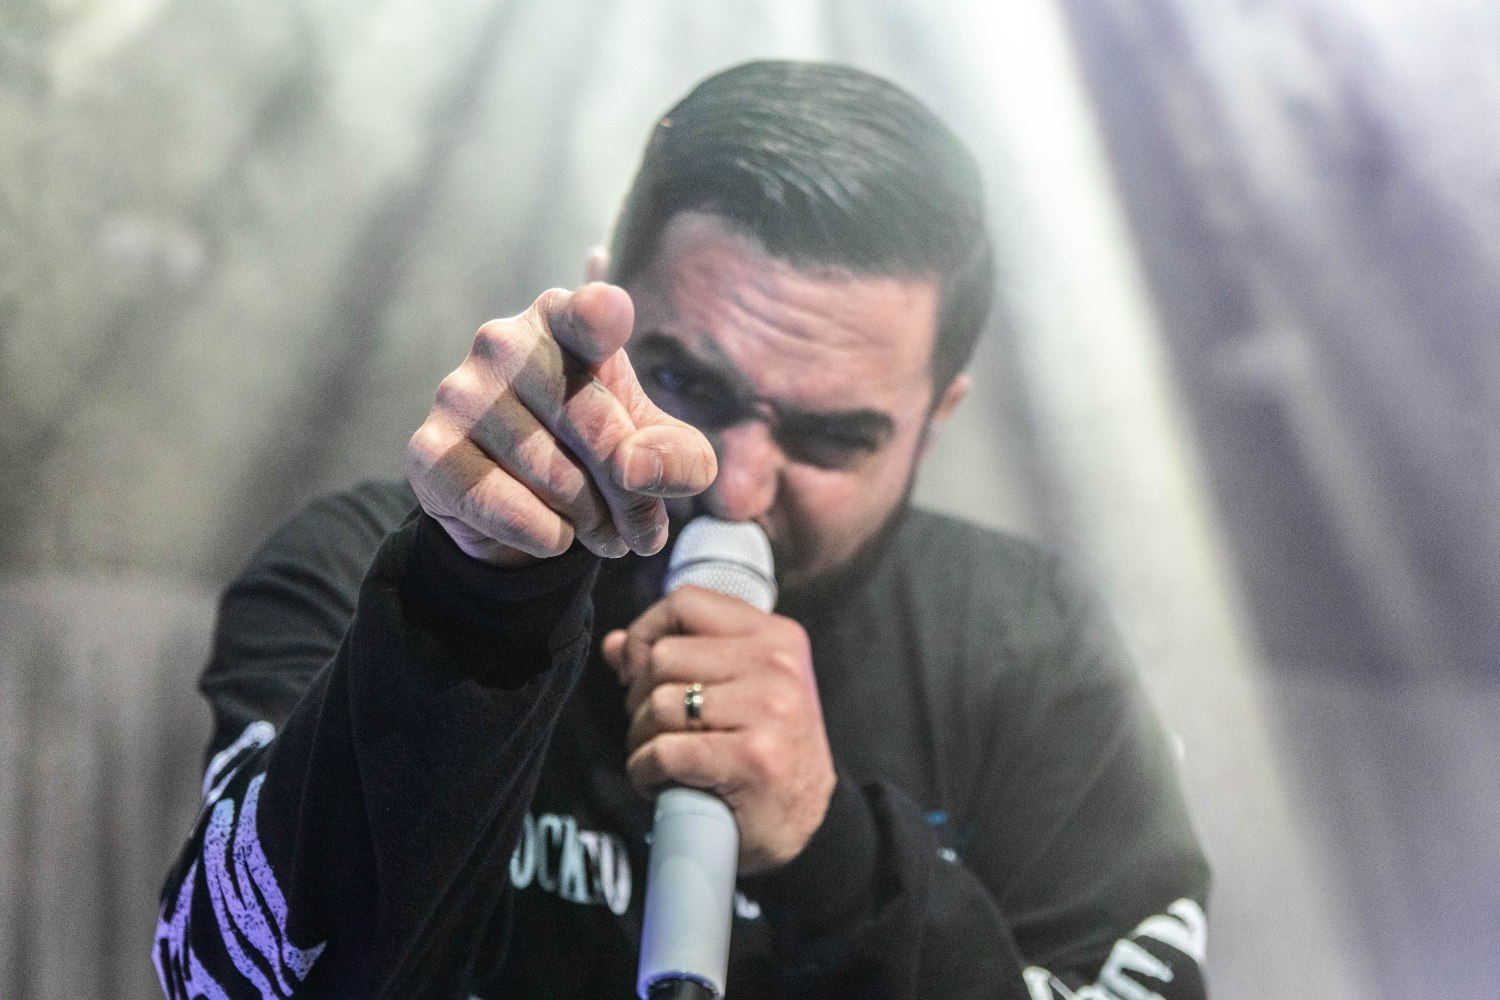 A Day to Remember lead singer Jeremy McKinnon performing at NRG Arena as part of the Degenerates North America Tour